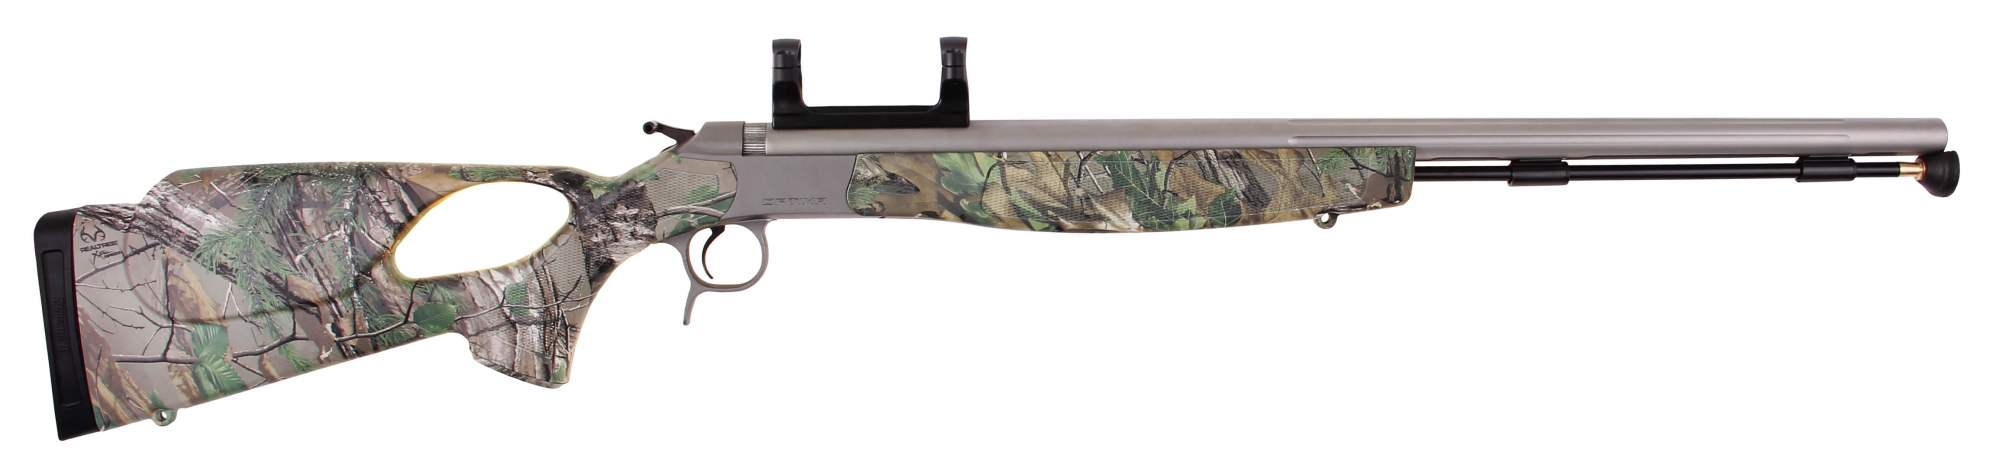 hight resolution of optima v2 realtree xtra green camo thumbhole stock stainless steel scope mount